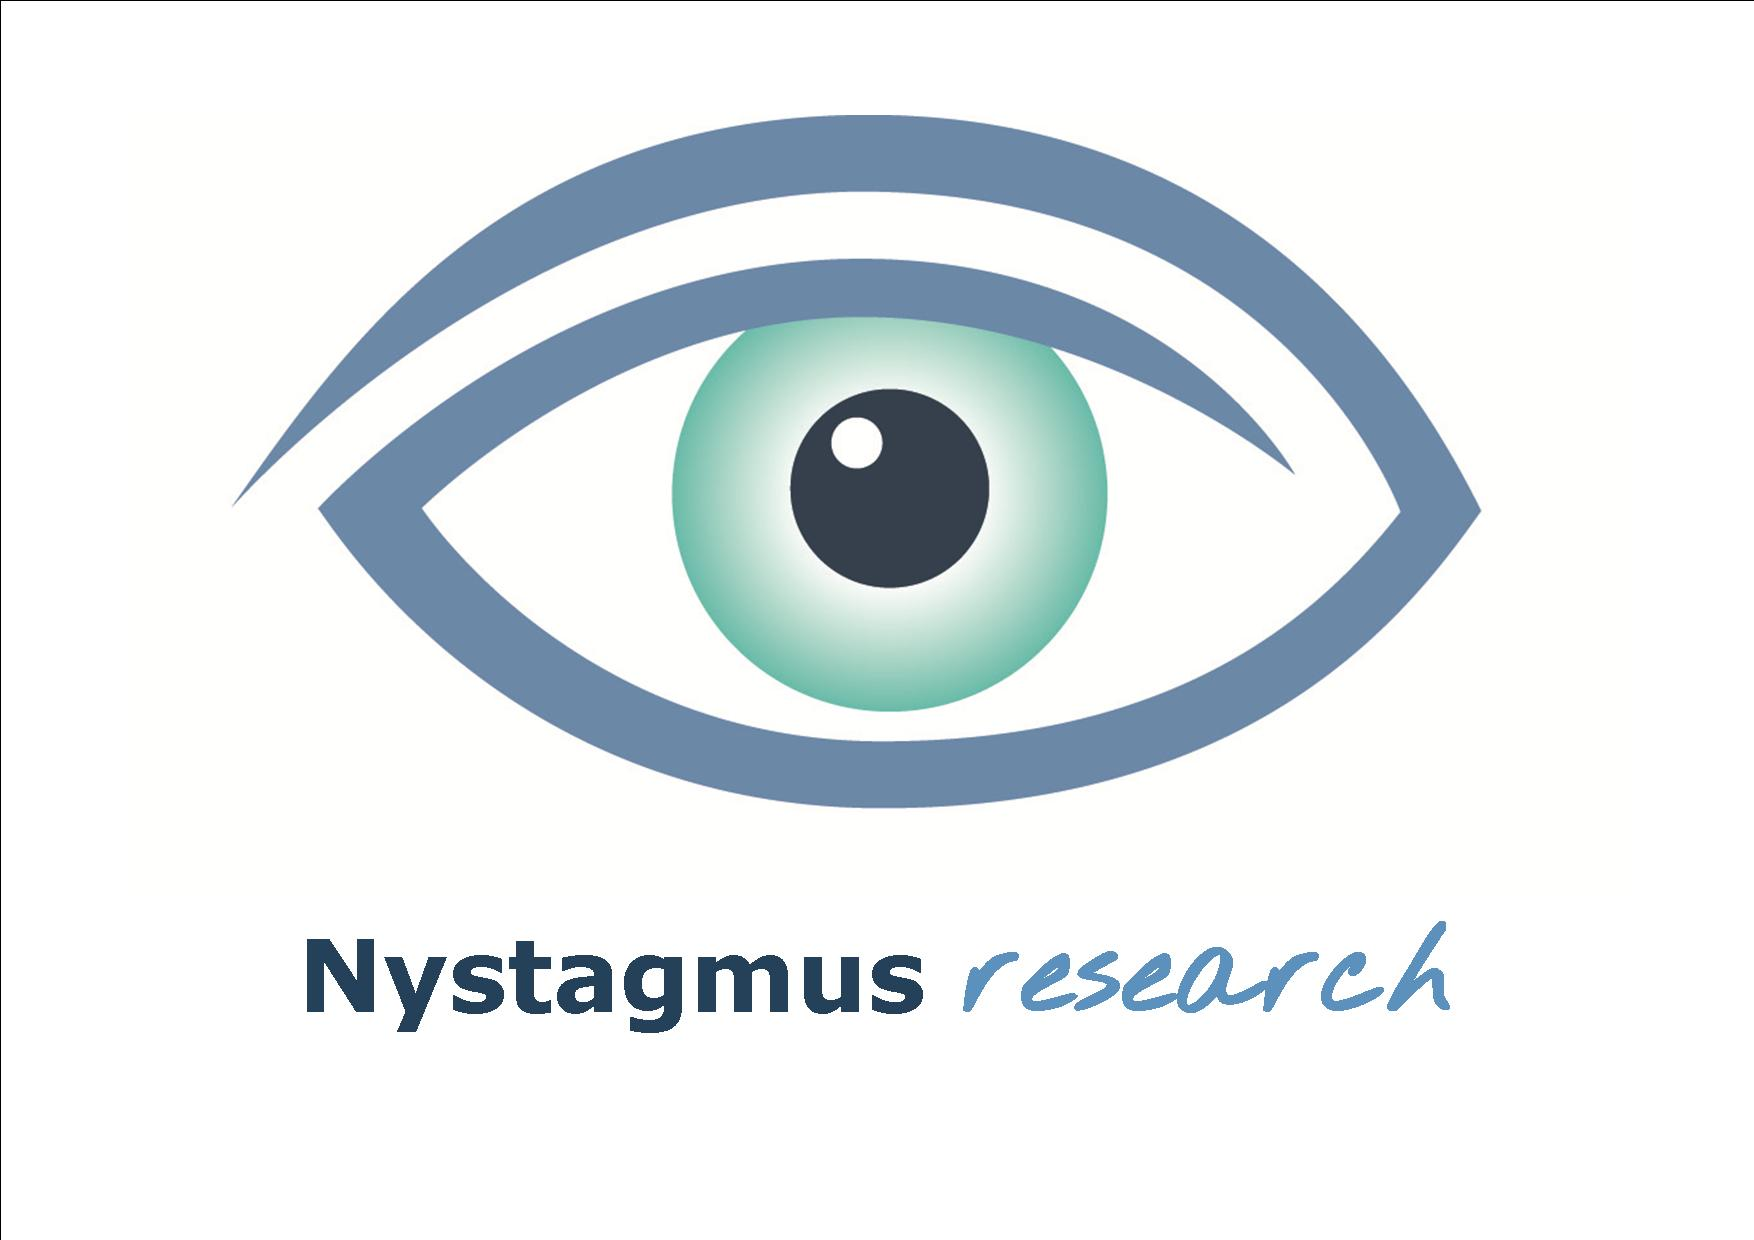 Your nystagmus research questions answered – question 4